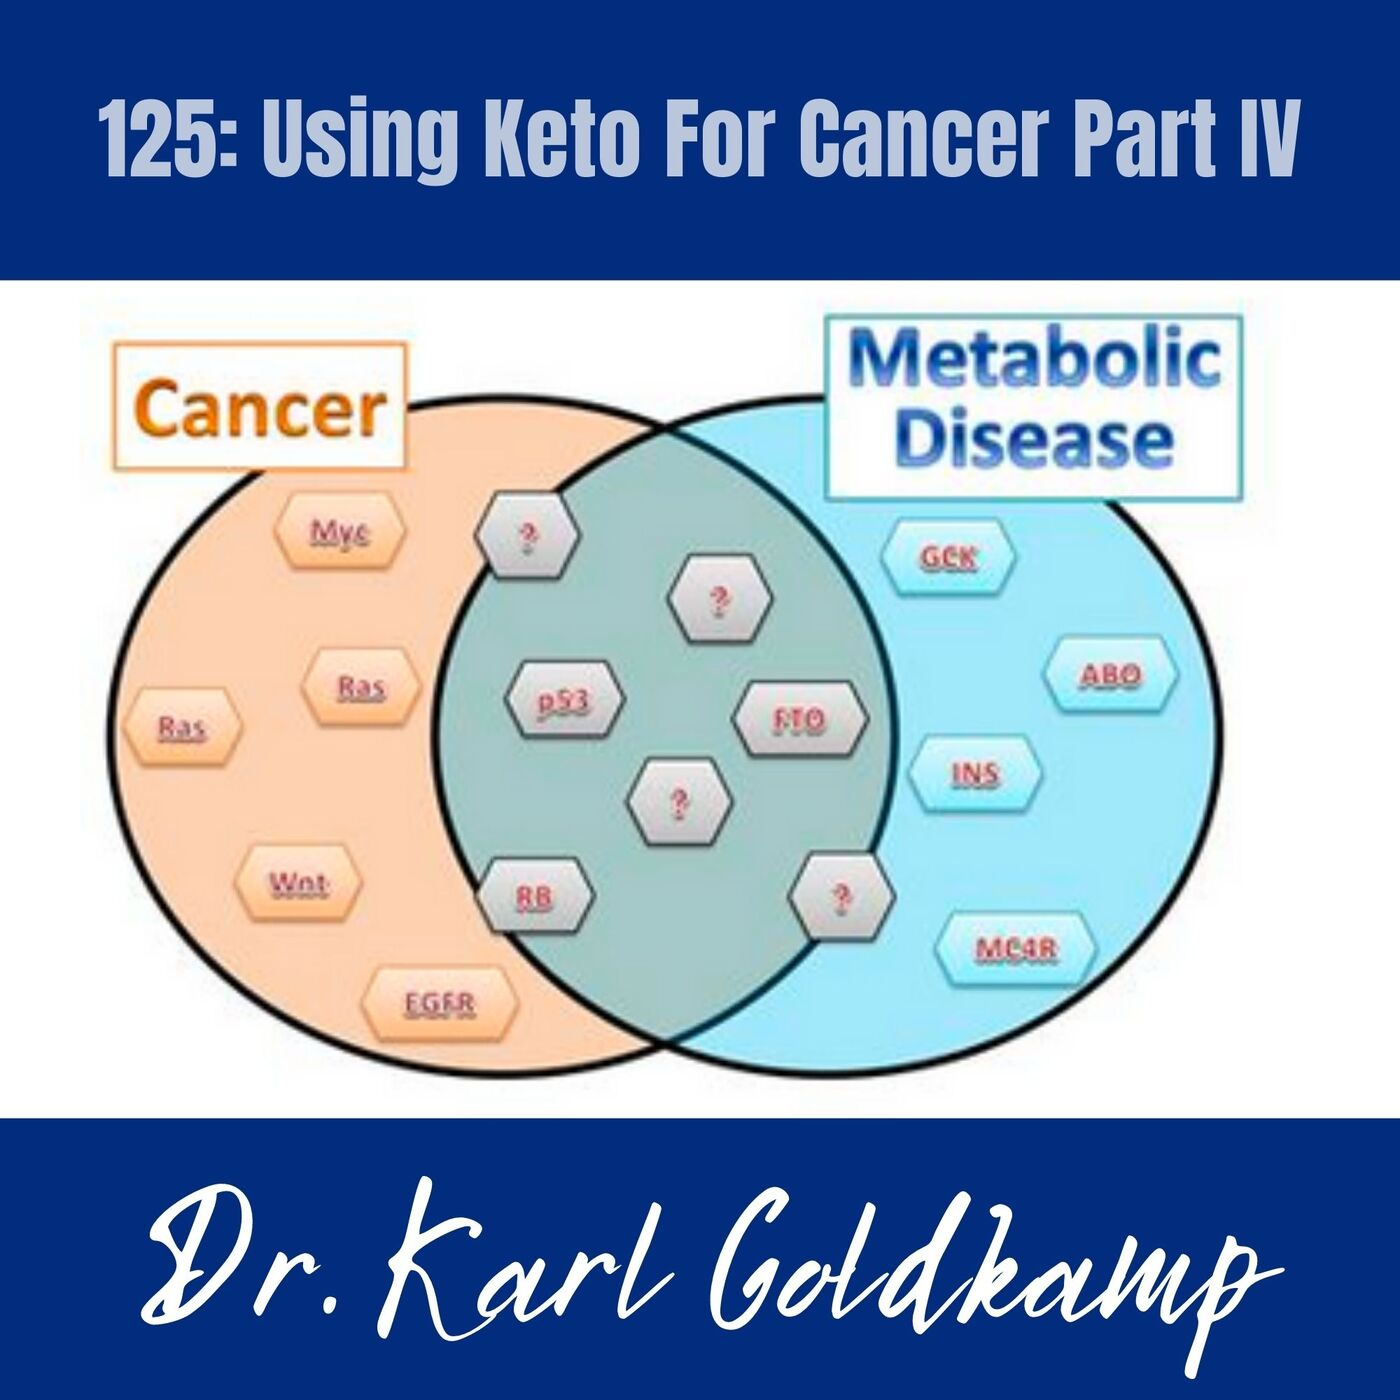 125: Using Keto For Cancer Part IV